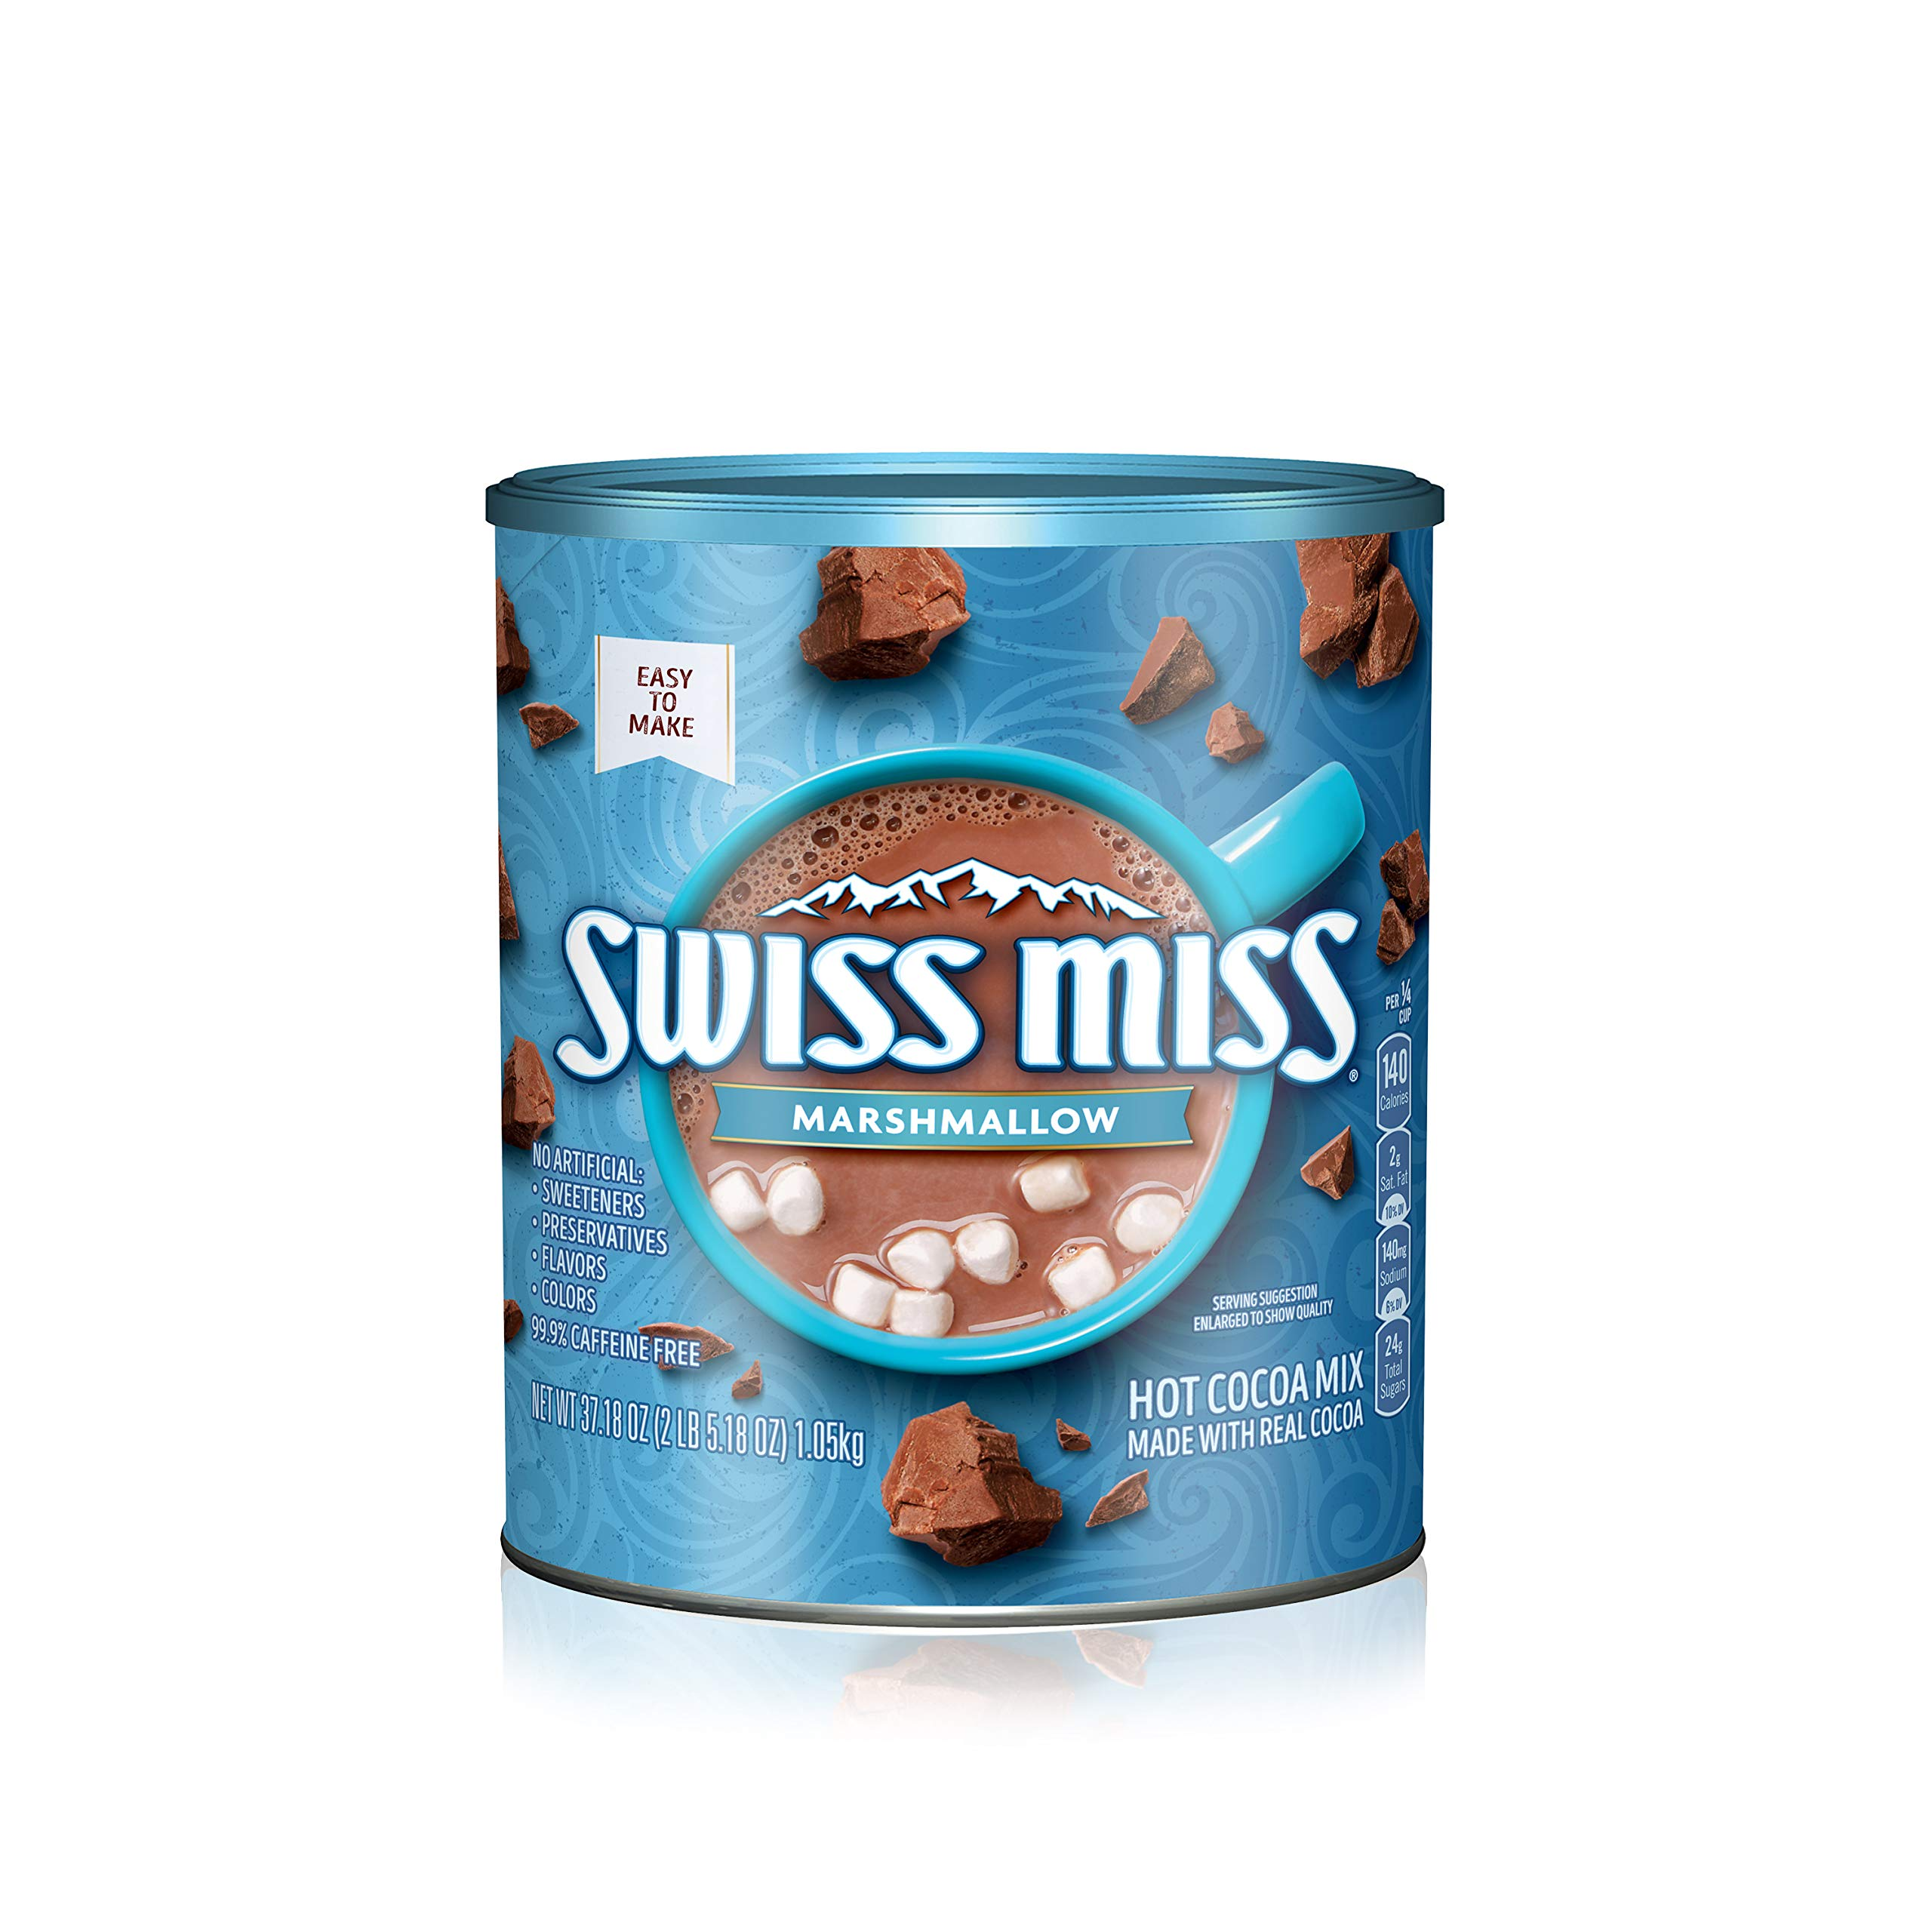 Swiss Miss Marshmallow Hot Cocoa Mix, 37.18 Ounce Canister